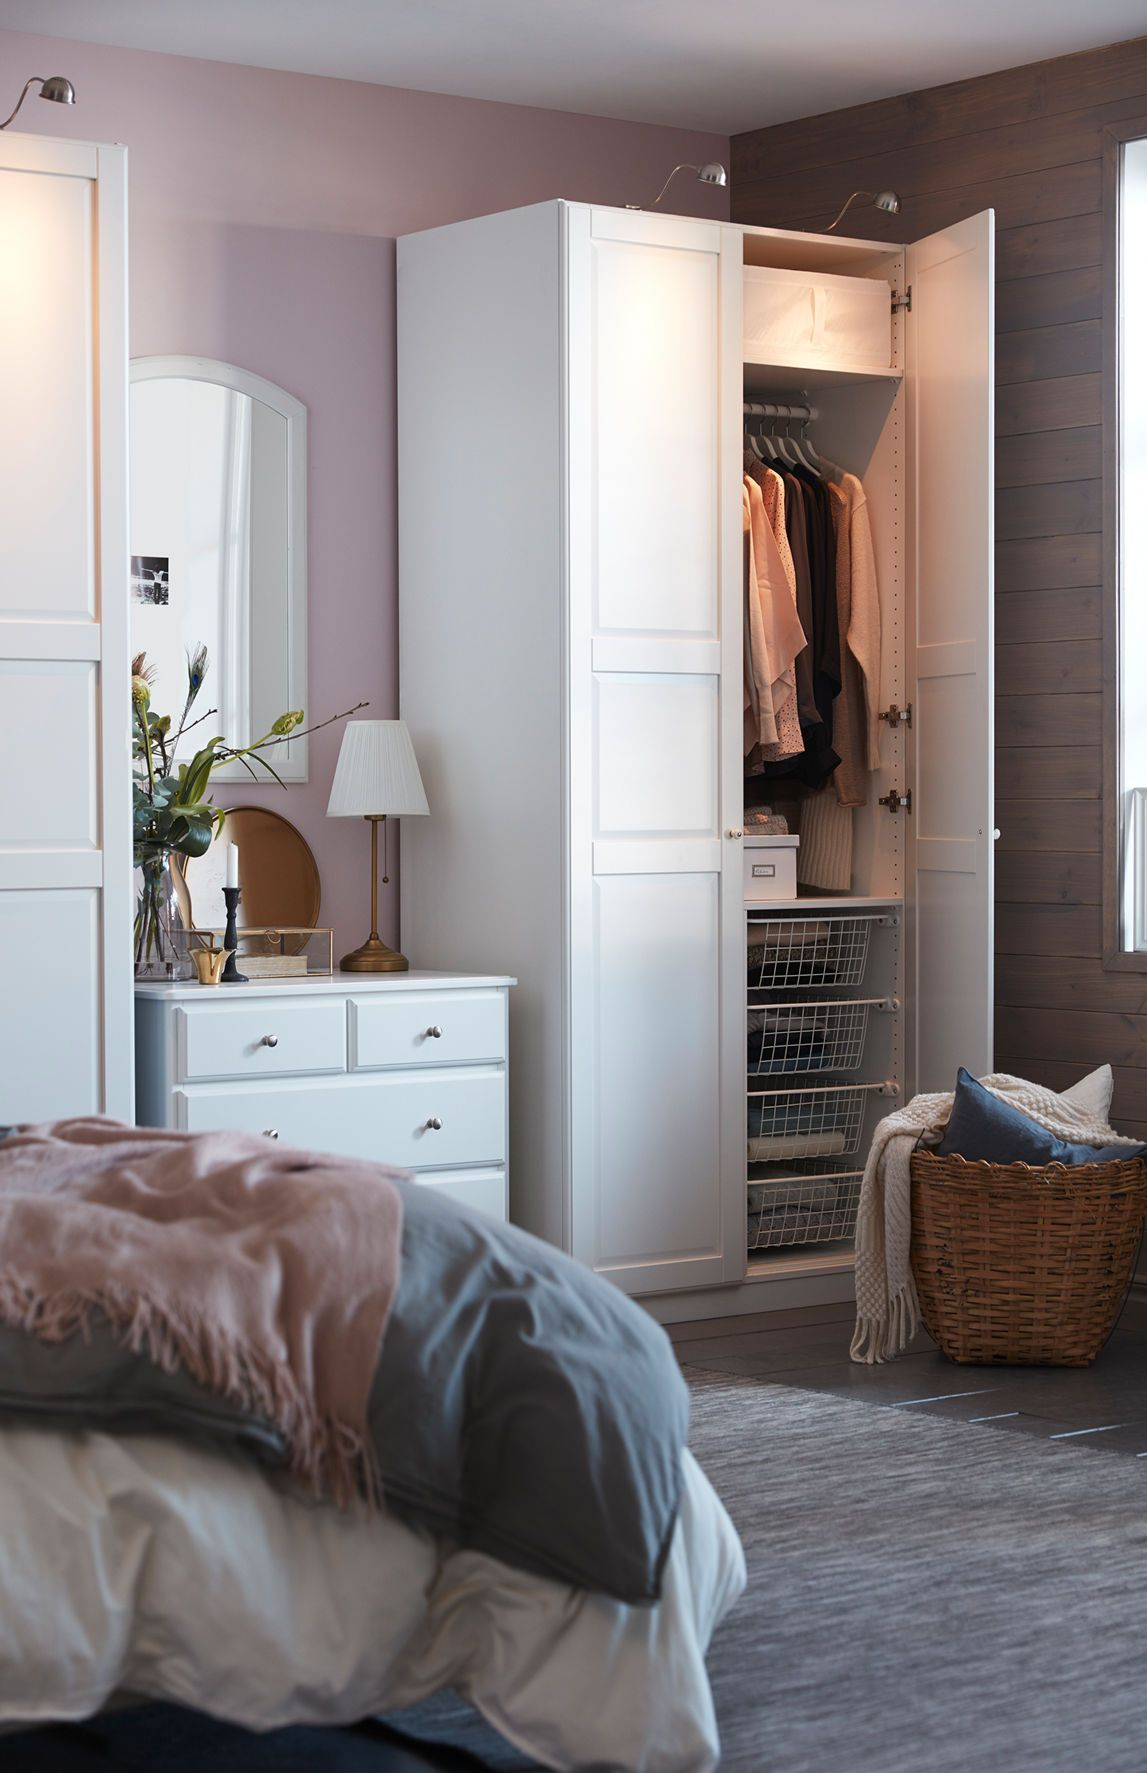 Schlafzimmer Ideen Ikea Isrb Wardrobe By17 Ikea In 2019 Bedroom Decor Bedroom